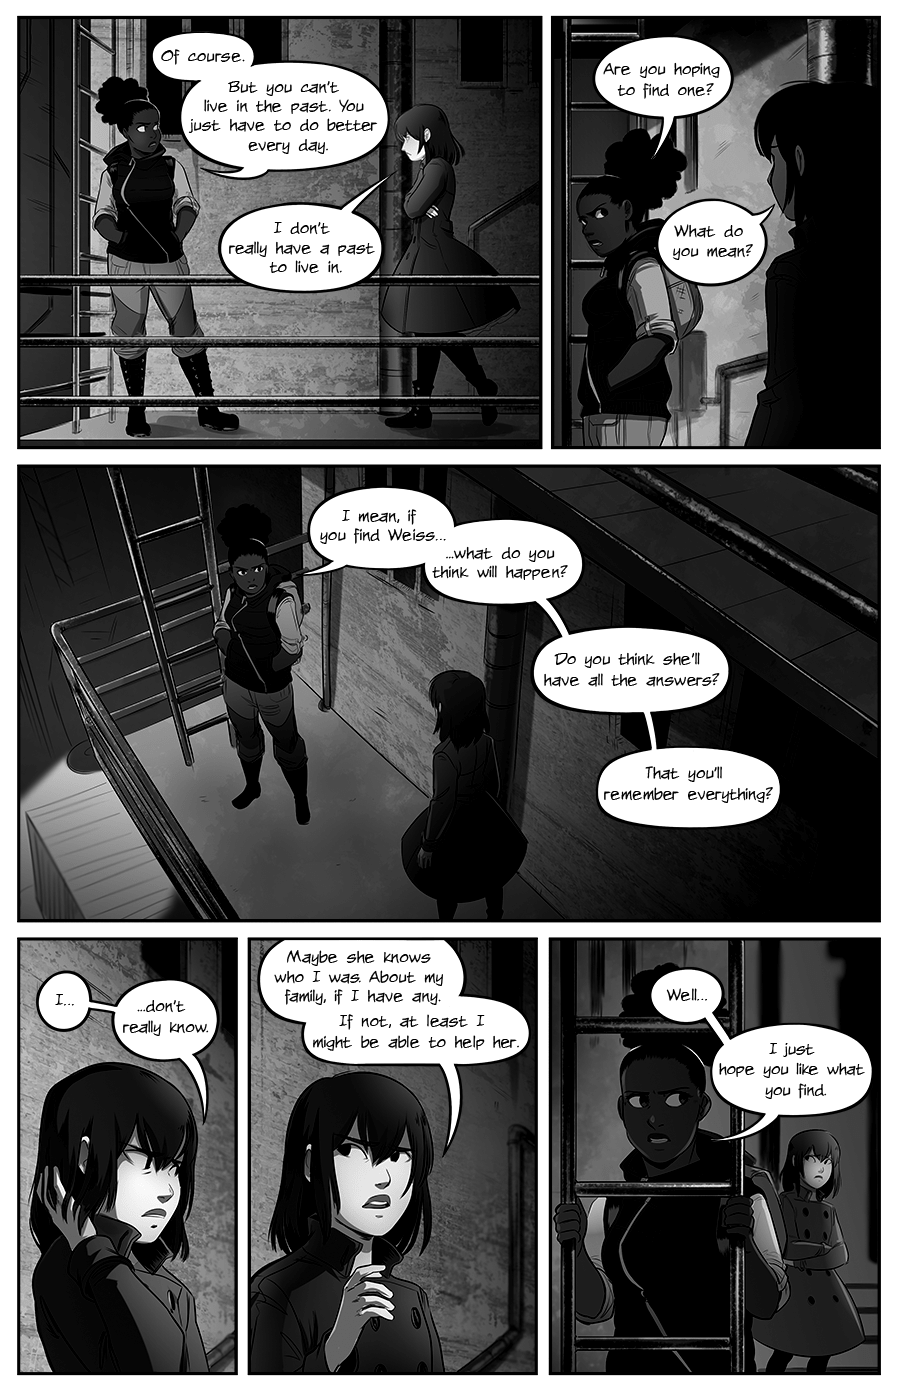 Ch 4 Page 22